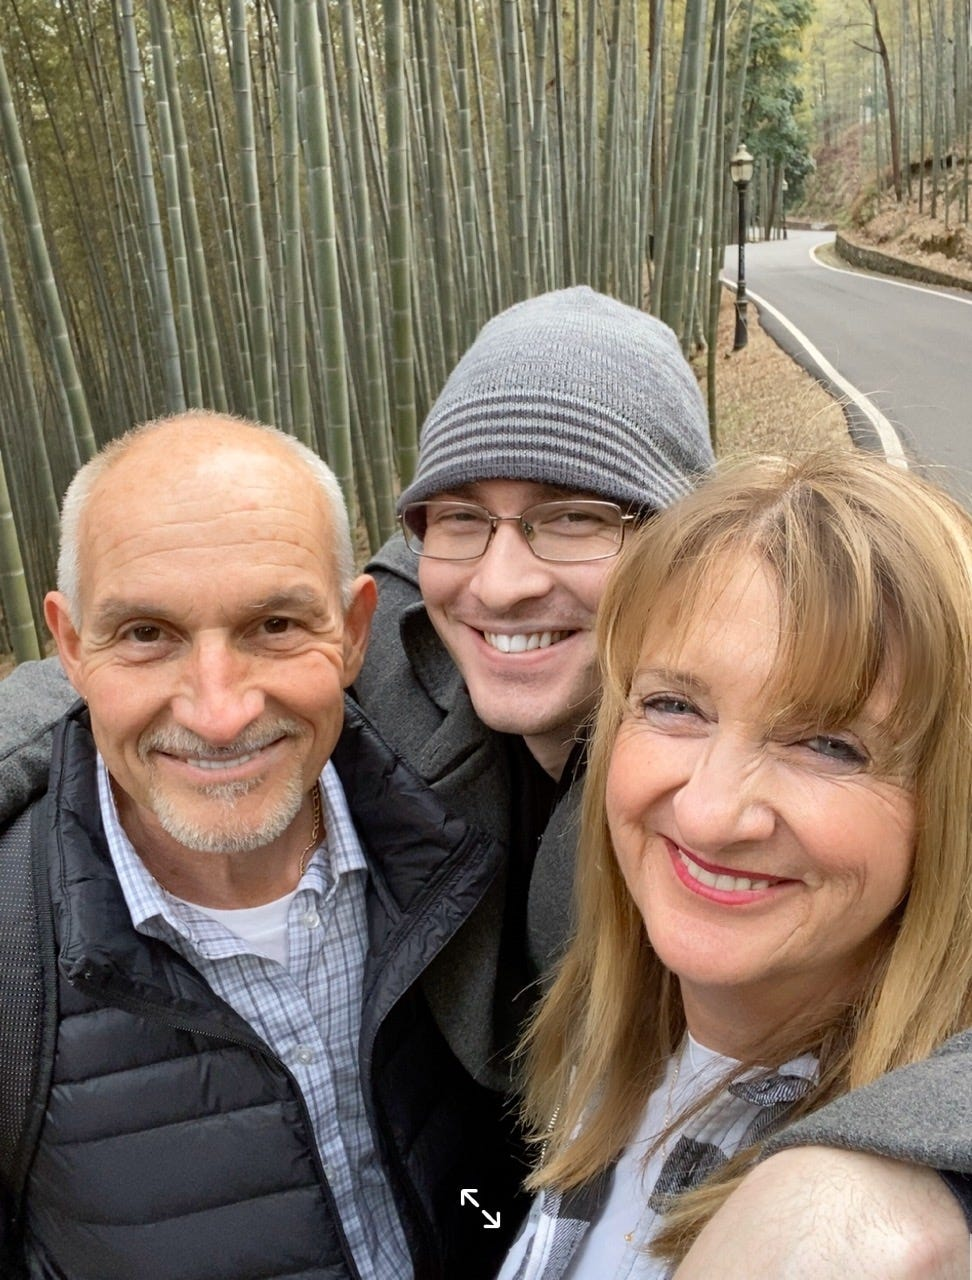 Claude and Ilona visit a national park with their son, Craig, on Jan. 22, 2020, before the lockdown began in Wuhan, China.